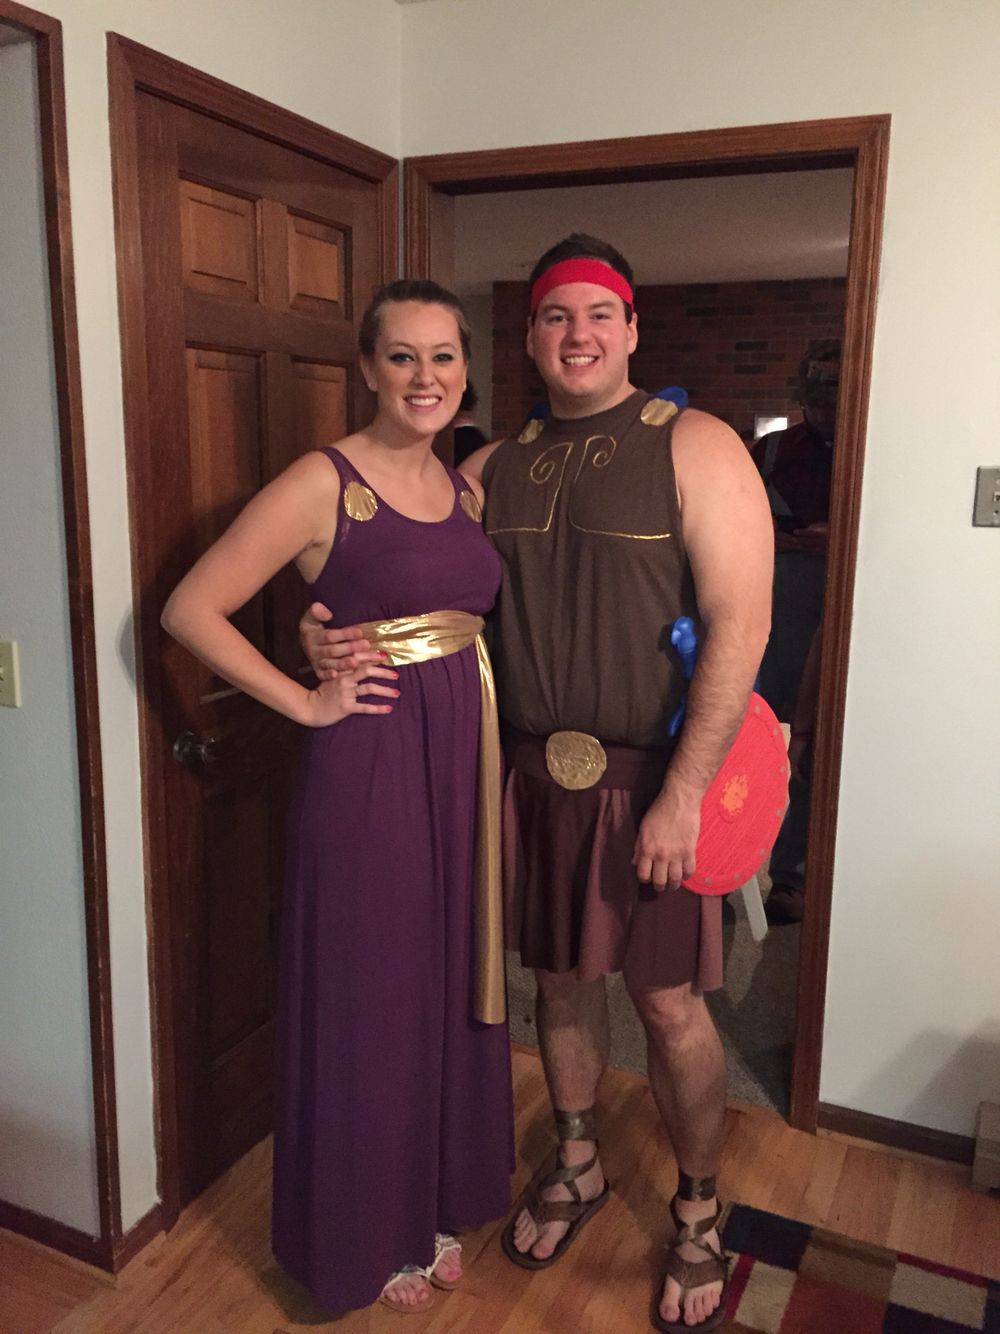 Hercules and Meg DIY costume | DIY crafts | Pinterest ...